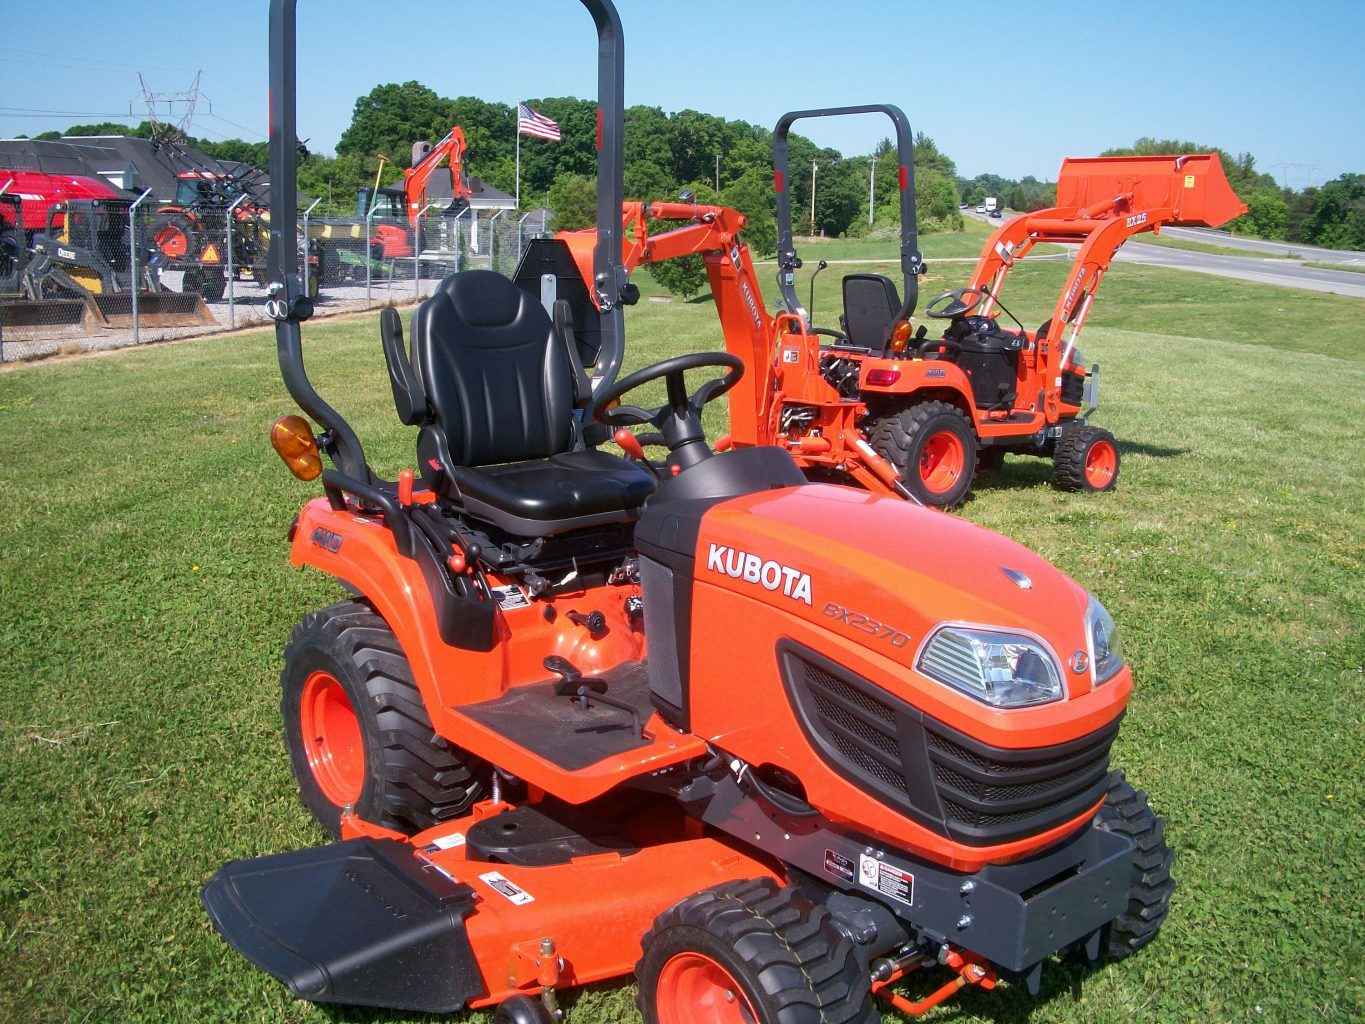 Kubota Tractor Batteries : Kubota bx reviews specs attachments price uk images